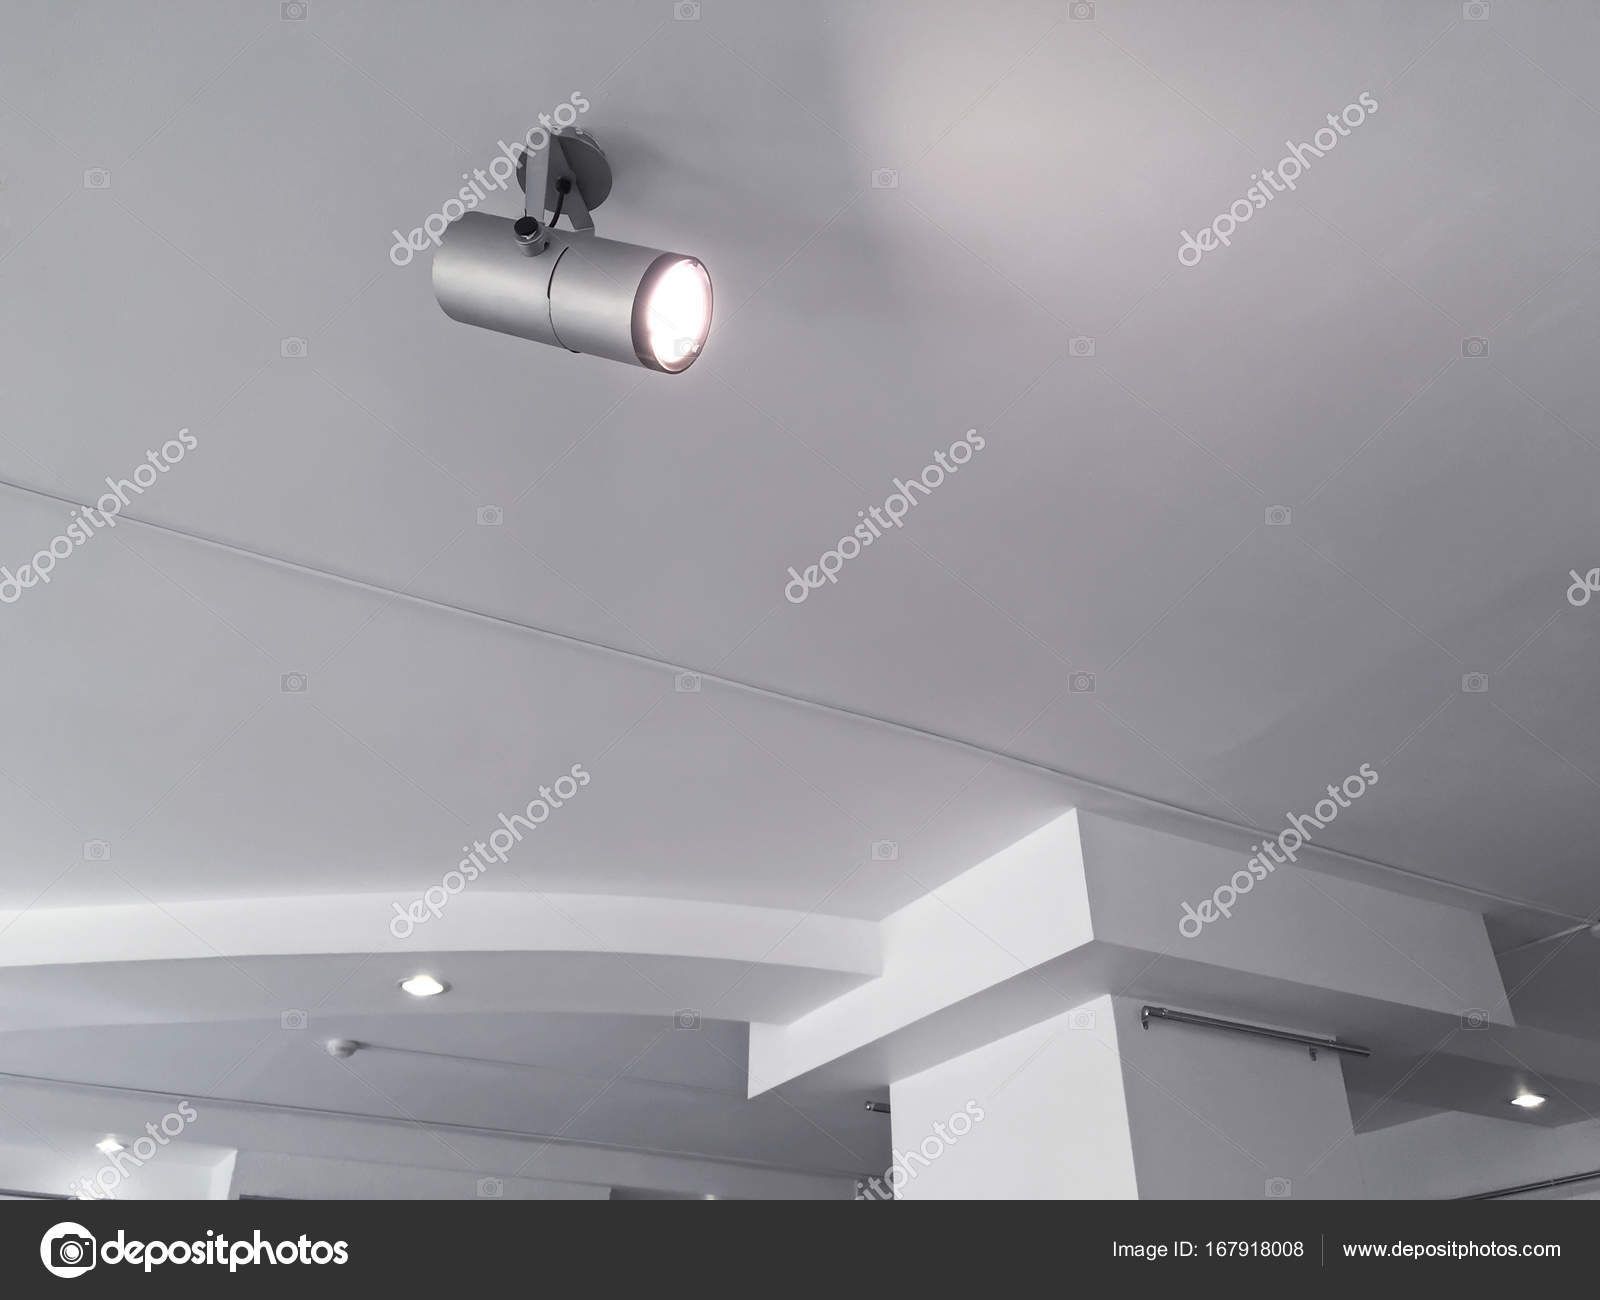 Exhibition Ceiling Light Fixtures Bright Halogen Spotlights On Exhibition Ceiling Stock Photo C Mrtwister 167918008